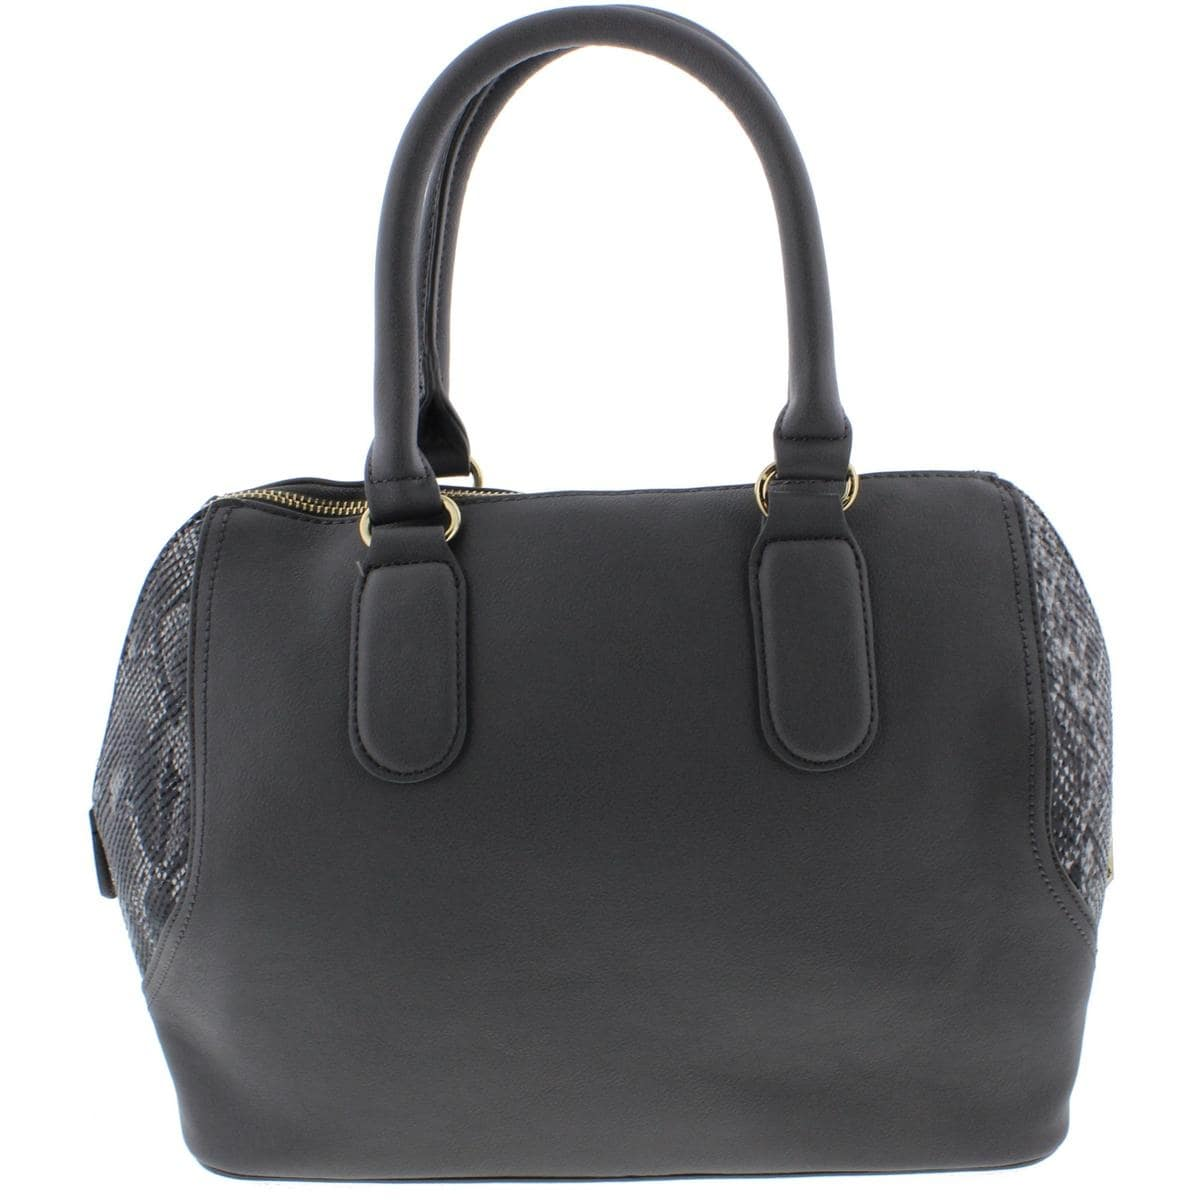 Bebe Womens Roxanne Satchel Handbag Faux Leather Lined Free Shipping On Orders Over 45 13557999